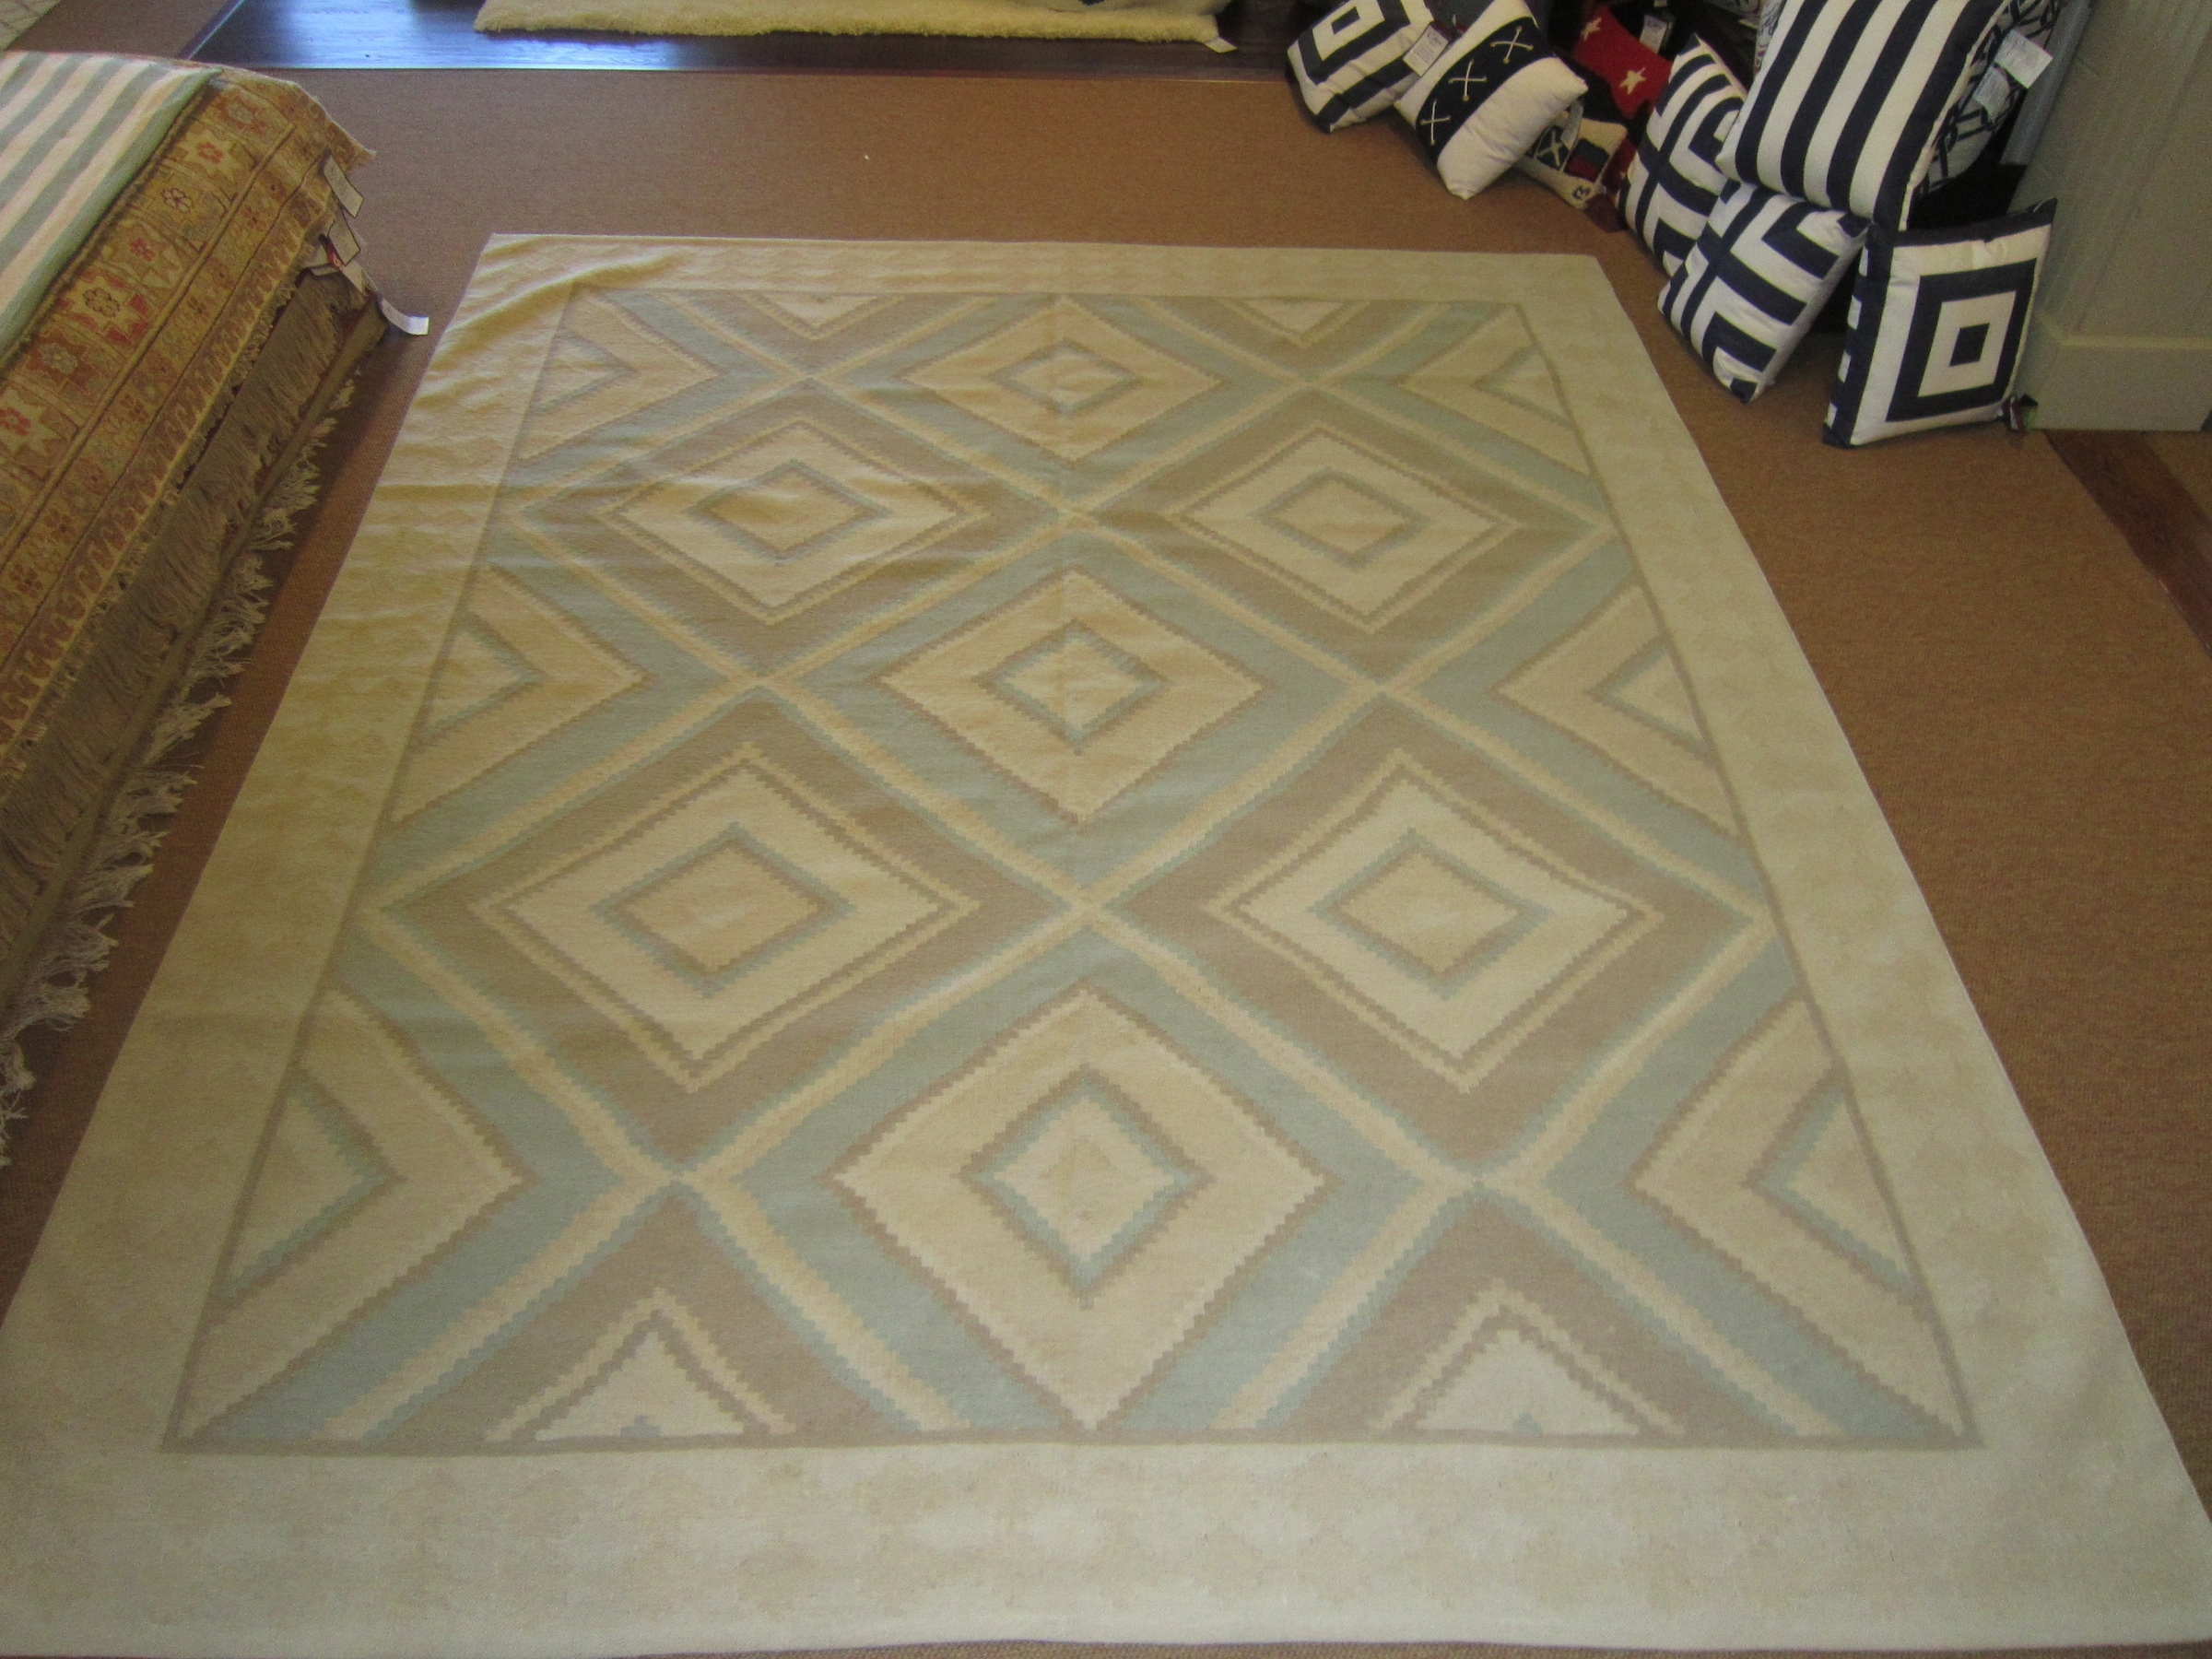 New Wool Flat Weave Area Rugs Colony Rug Provider Of Carpet Throughout Wool Flat Weave Area Rugs (#10 of 15)